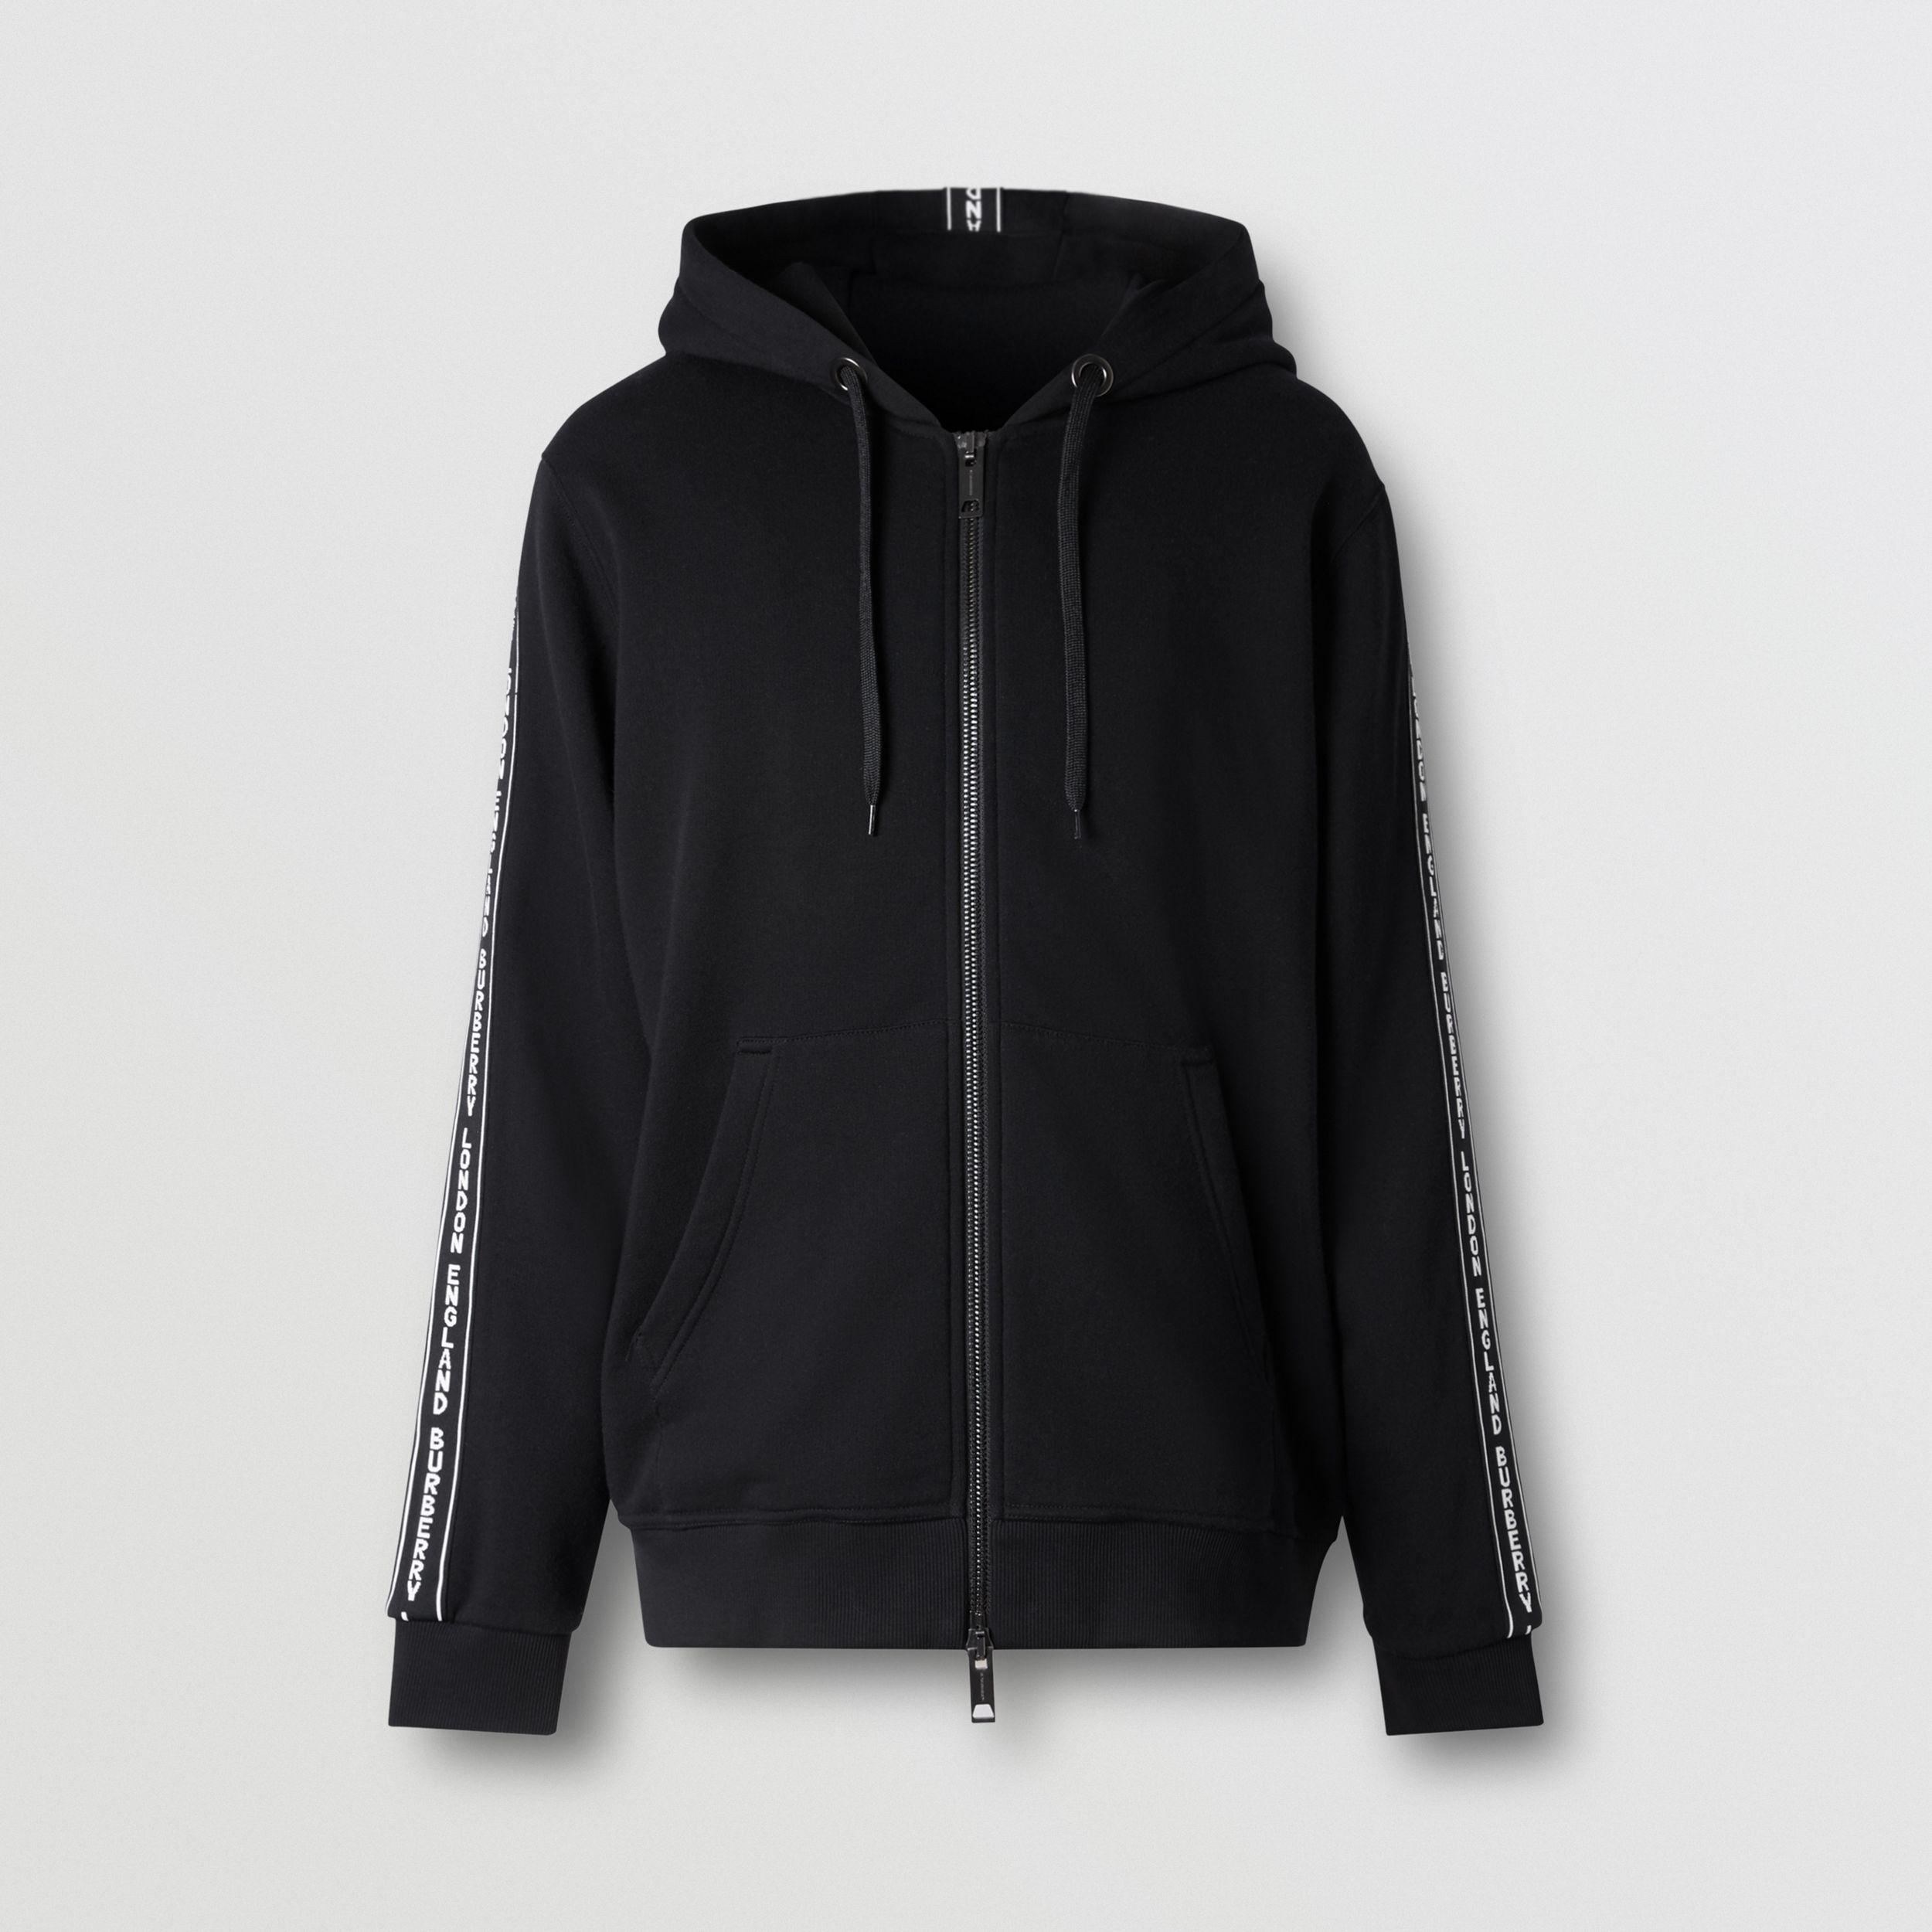 Logo Tape Cotton Hooded Top in Black - Men | Burberry Australia - 4